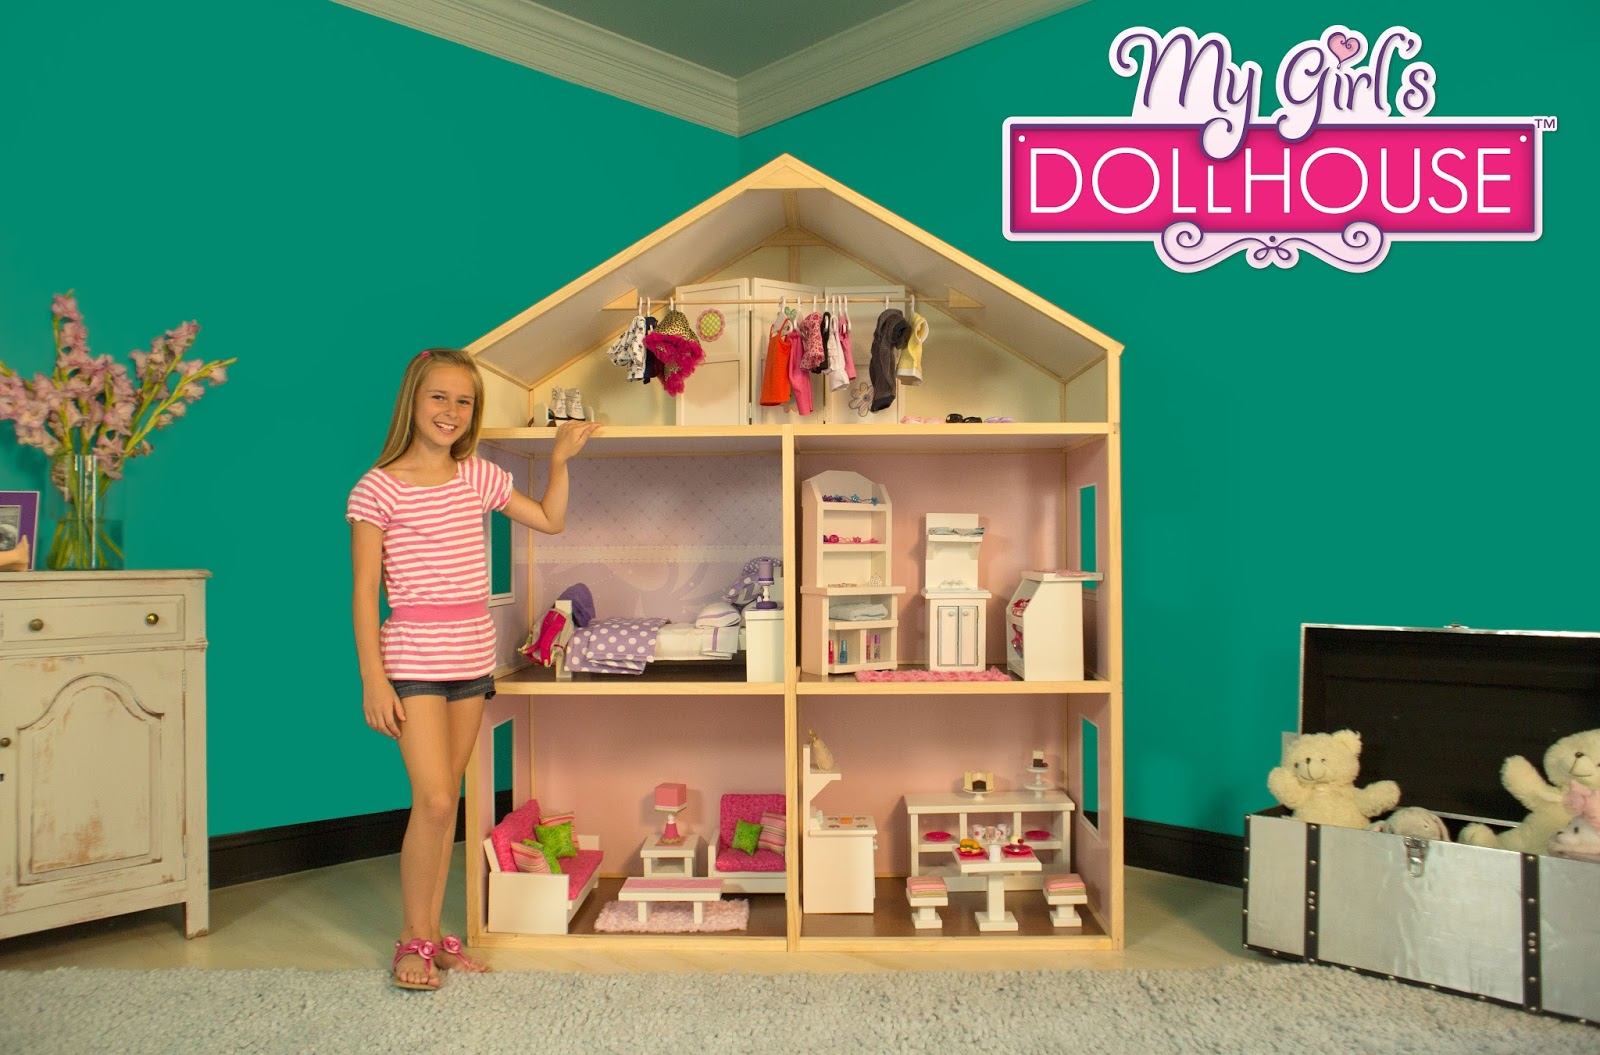 Karen Mom of Three's Craft Blog: Check Out An Amazing Doll House For Your Dolls